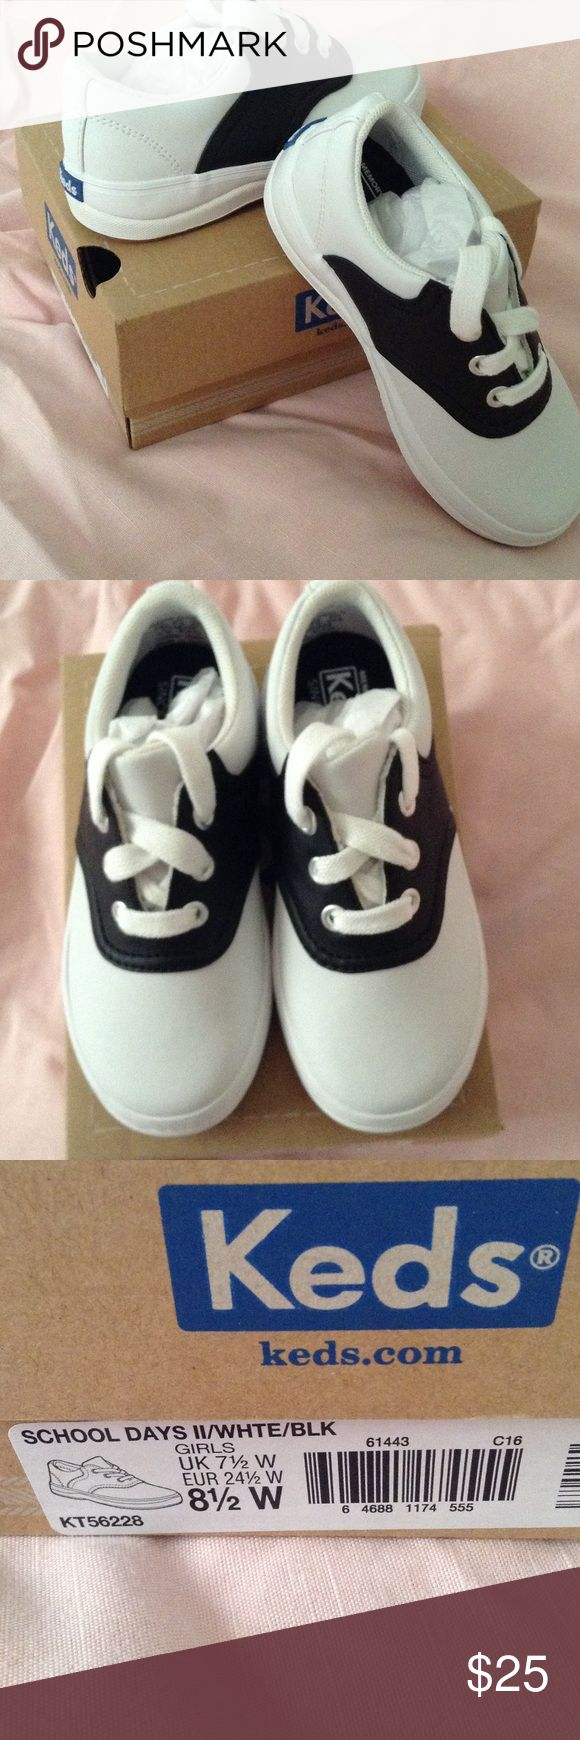 Keds Black and White Toddler Shoes Size 8 1/2 Wide New, in box. Keds School Days shoes. Toddler Girls size 8 1/2 wide. Leather upper. No defects. Perfect condition. Keds Shoes Sneakers